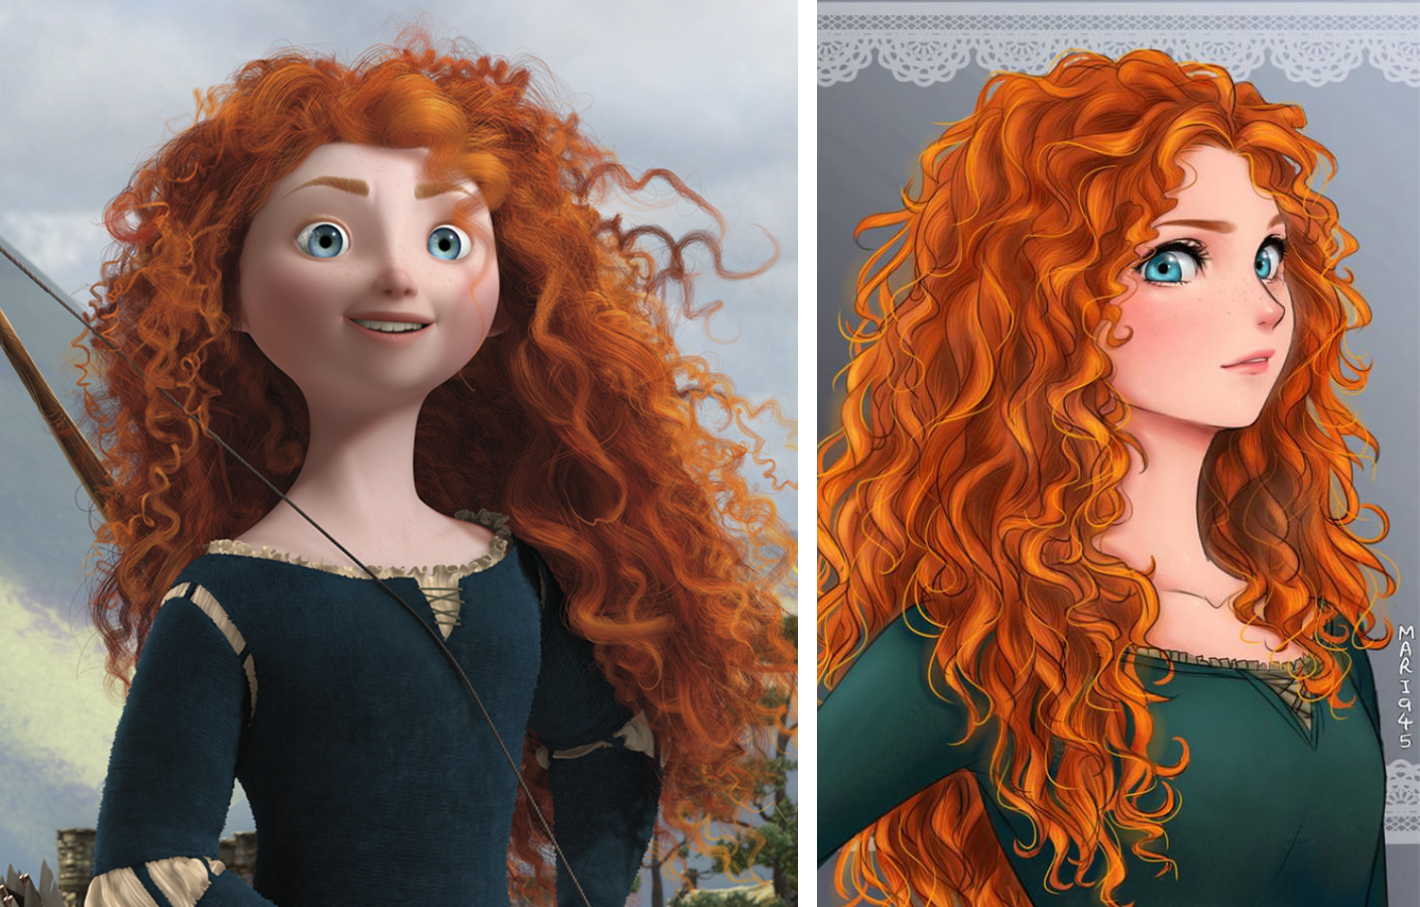 princesas disney version manga merida